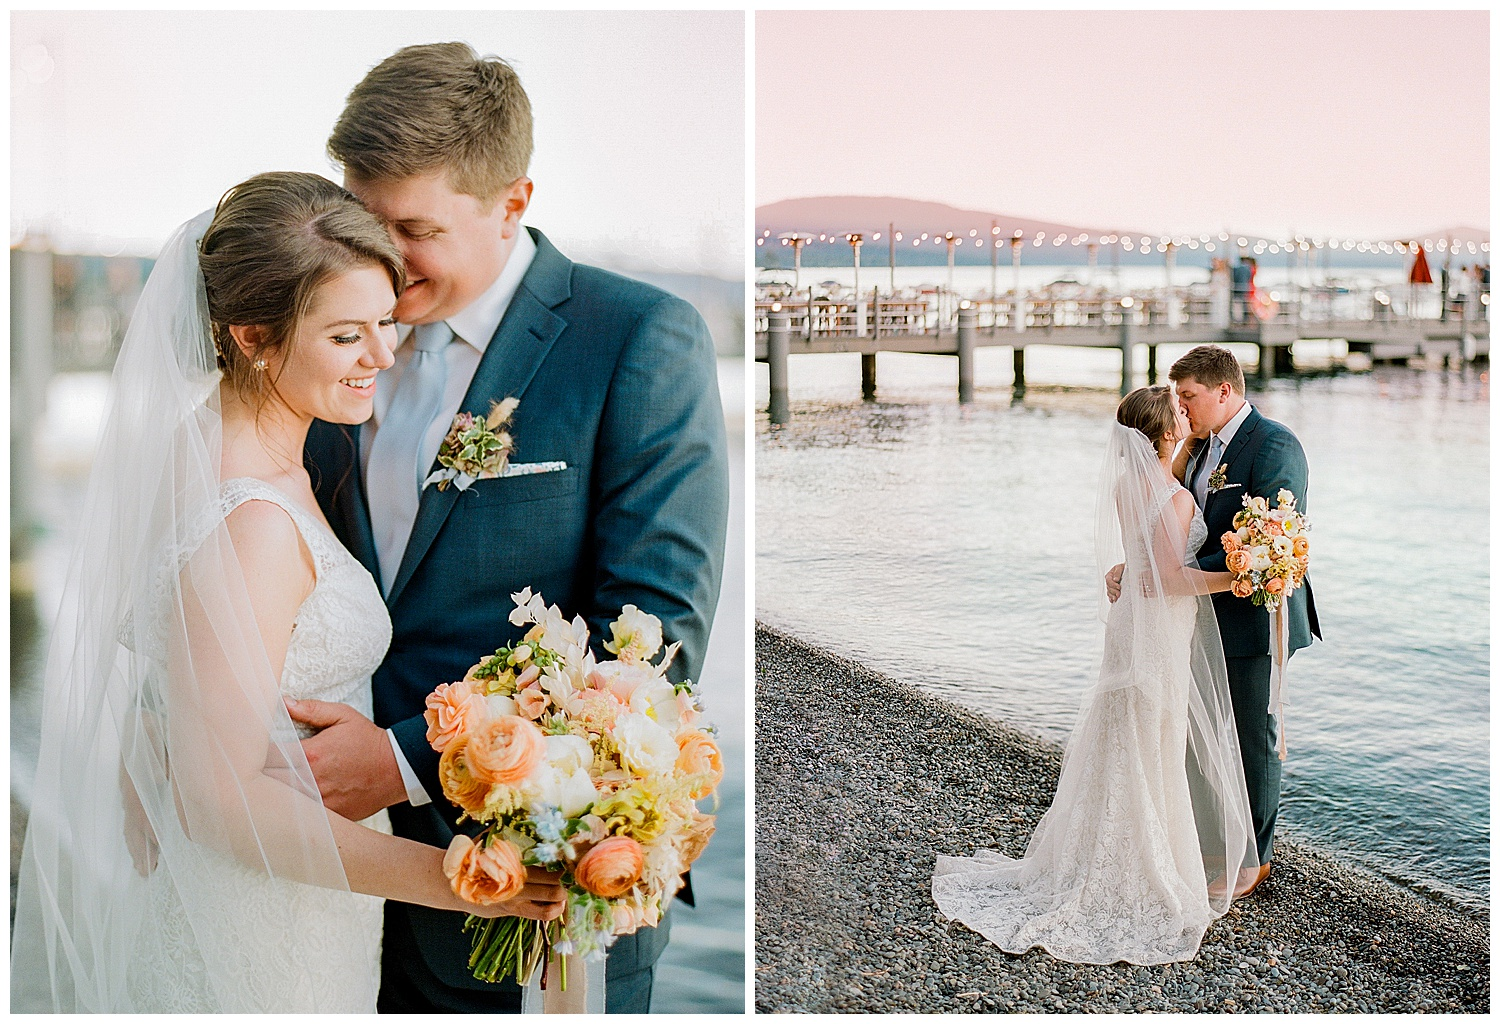 Janine_Licare_Photography_San_Francisco_Wedding_Photographer_Lake_Tahoe_West_Shore_Cafe_Colorful_Summer_0056.jpg